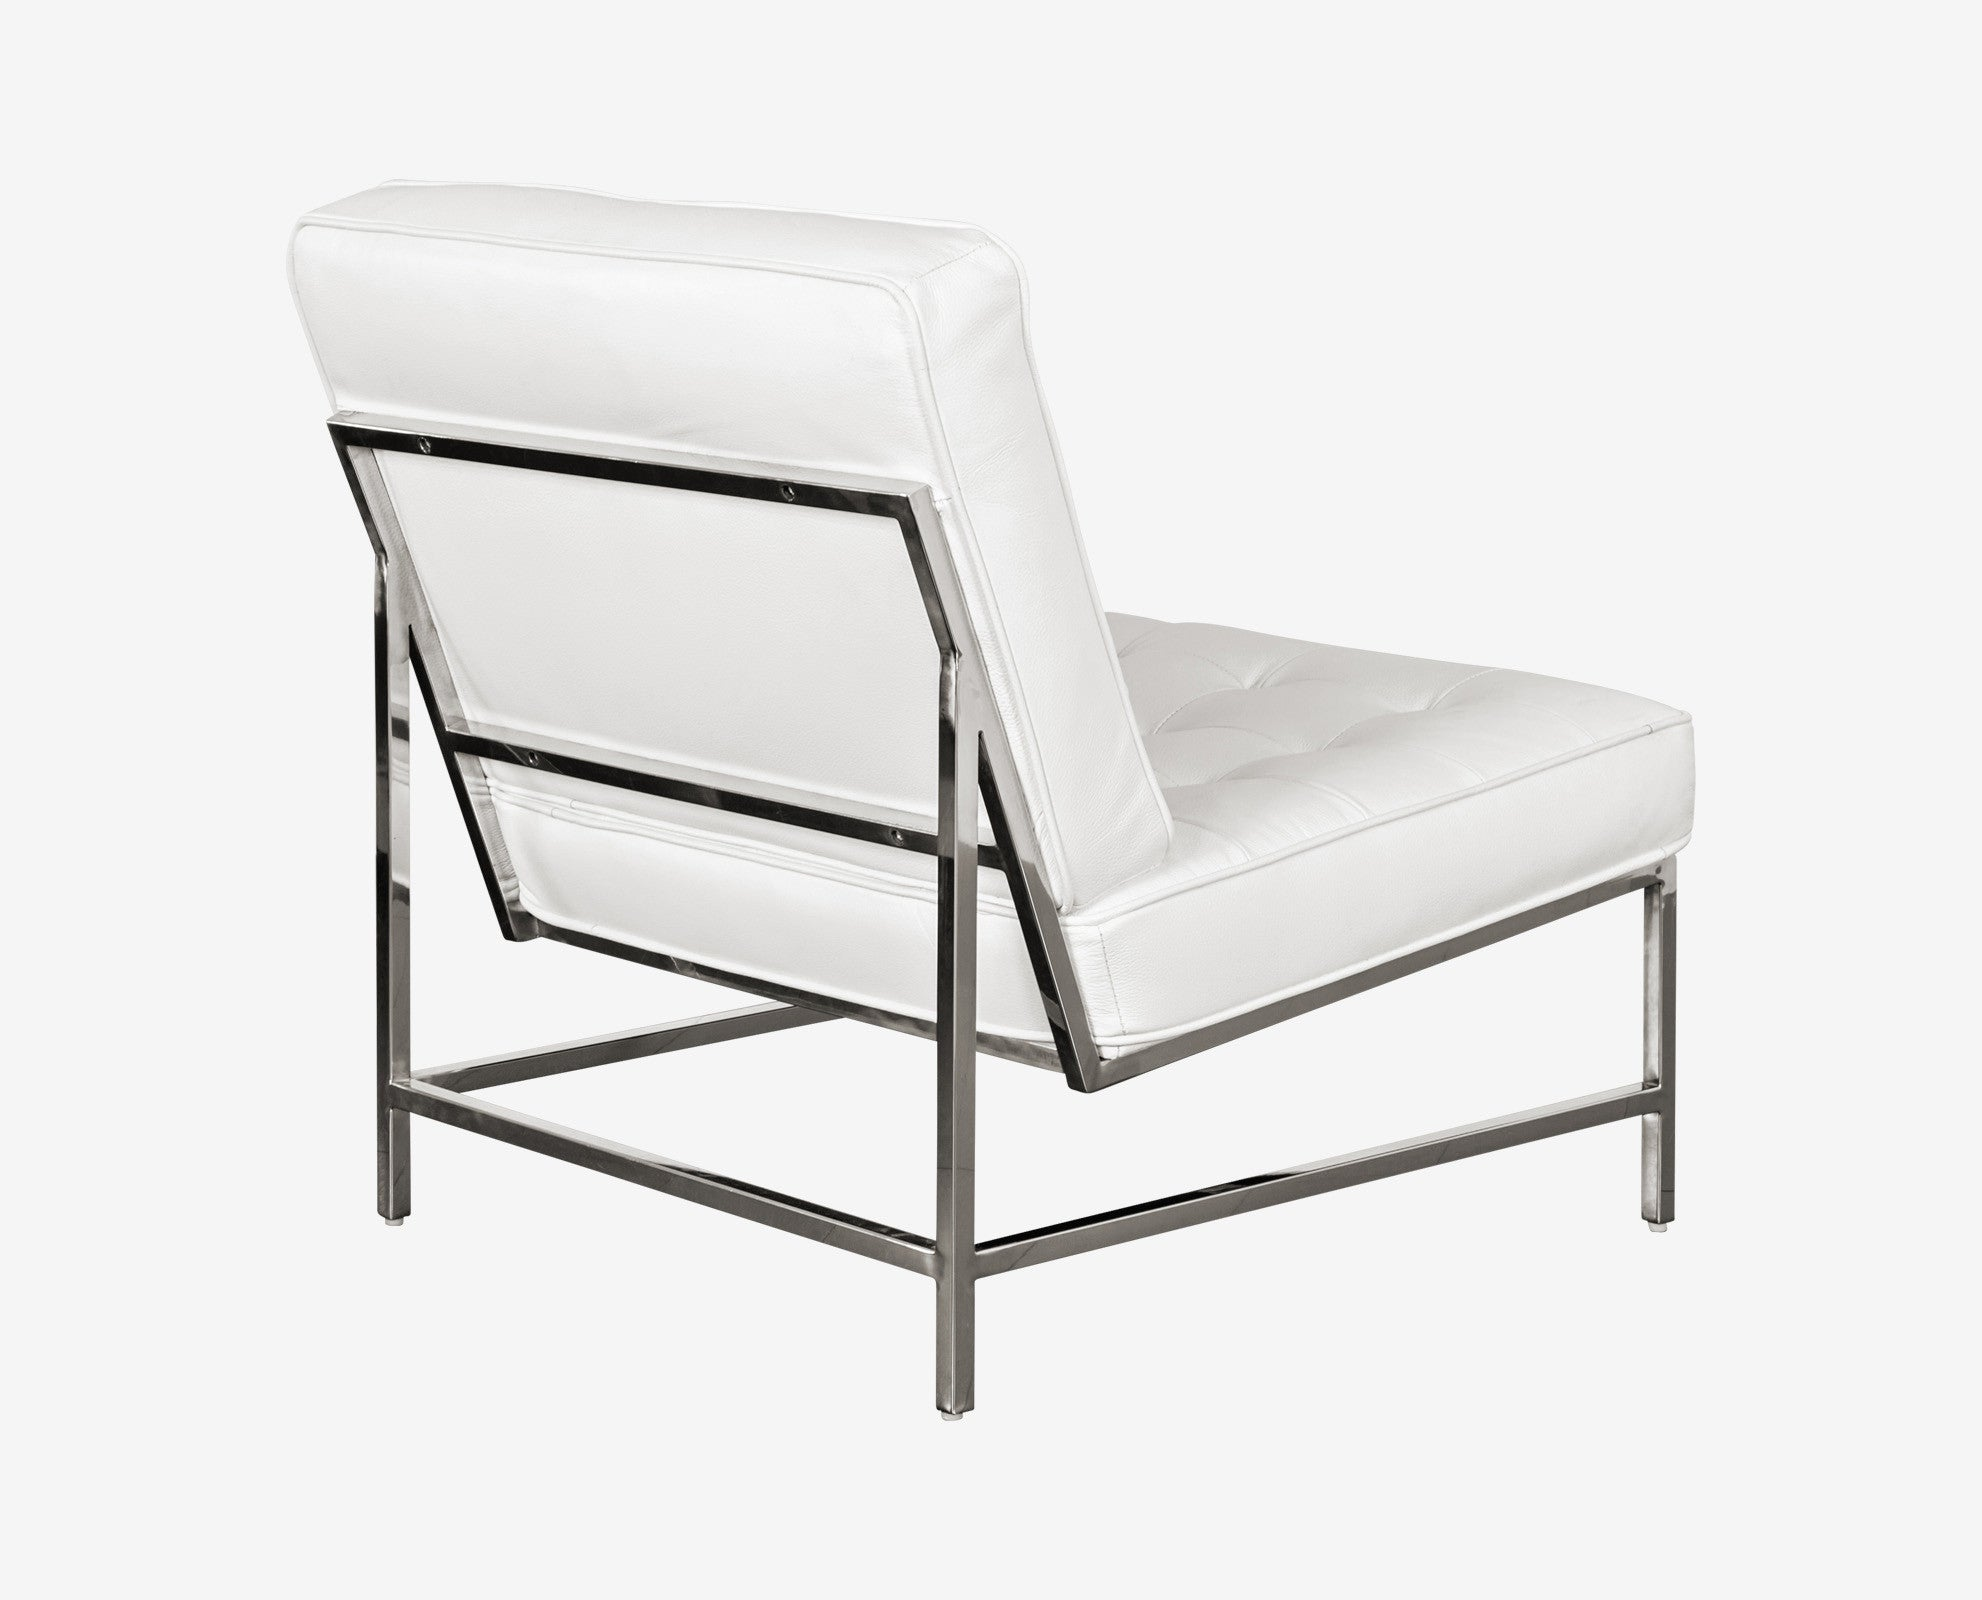 Minimalist white leather contemporary danish chair